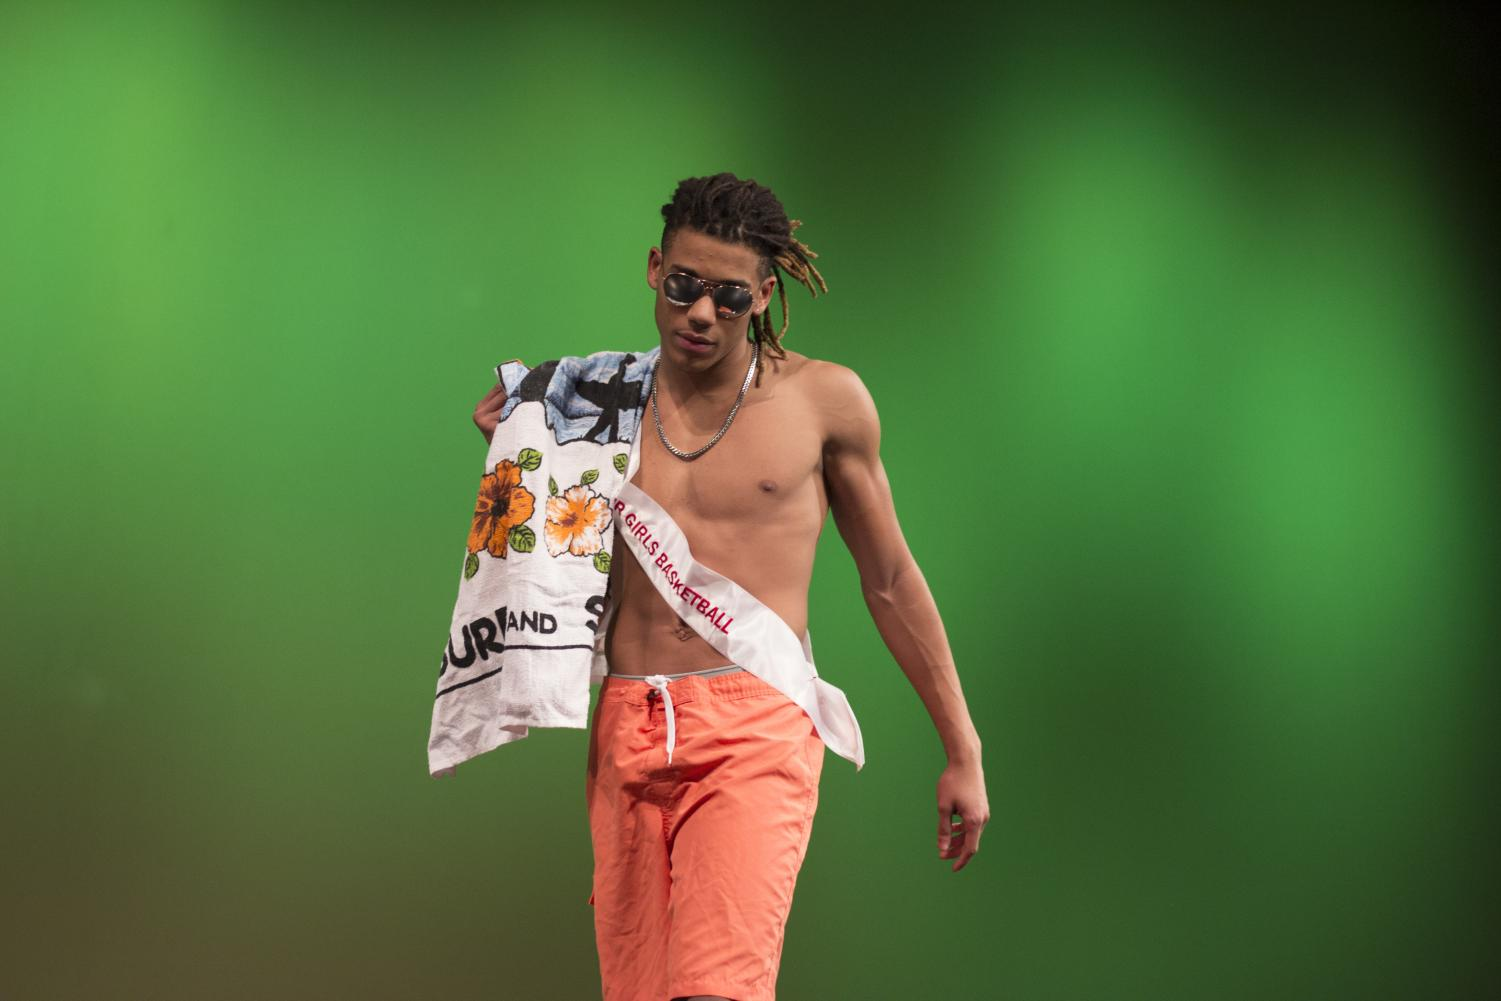 Cornell+Young%2C+senior%2C+walks+onto+the+stage+during+the+swimwear+competition.+